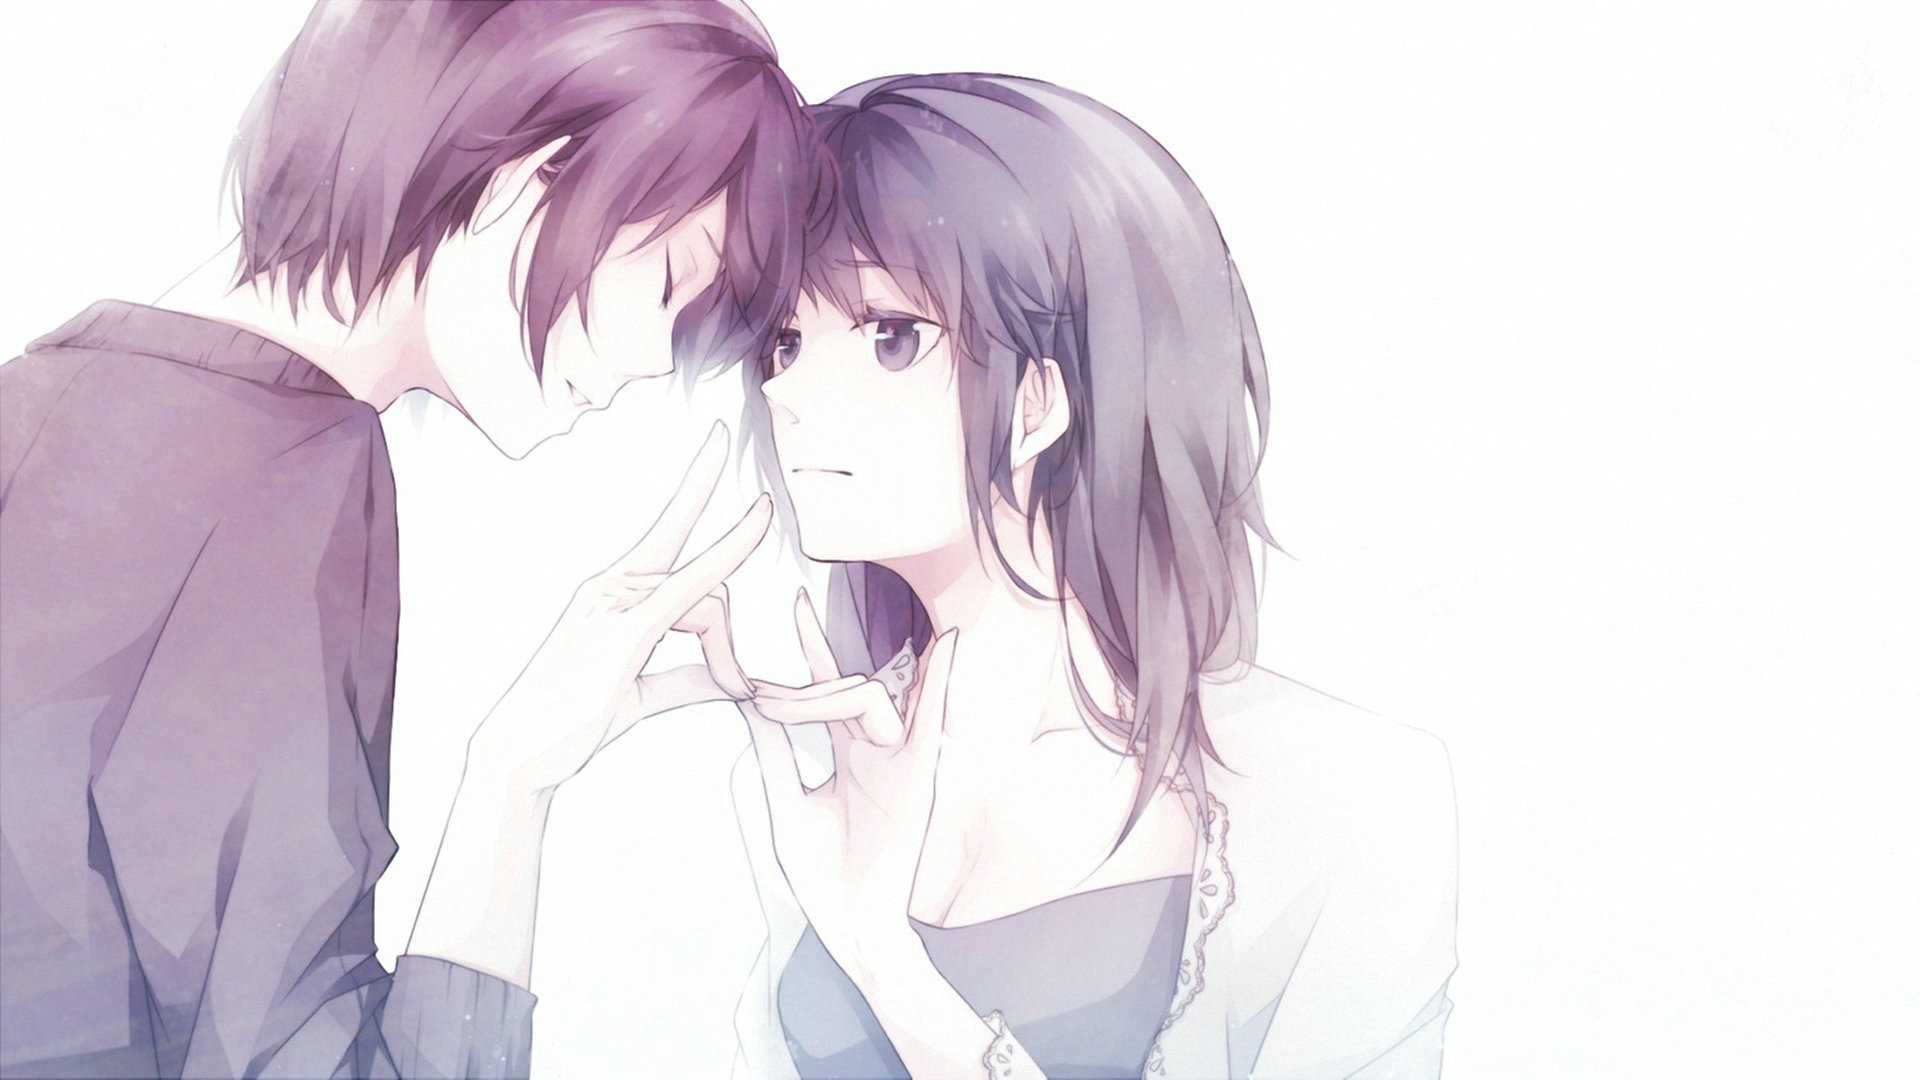 ZY 43 Anime Couple Wallpaper, Anime Couple Full HD Pictures and